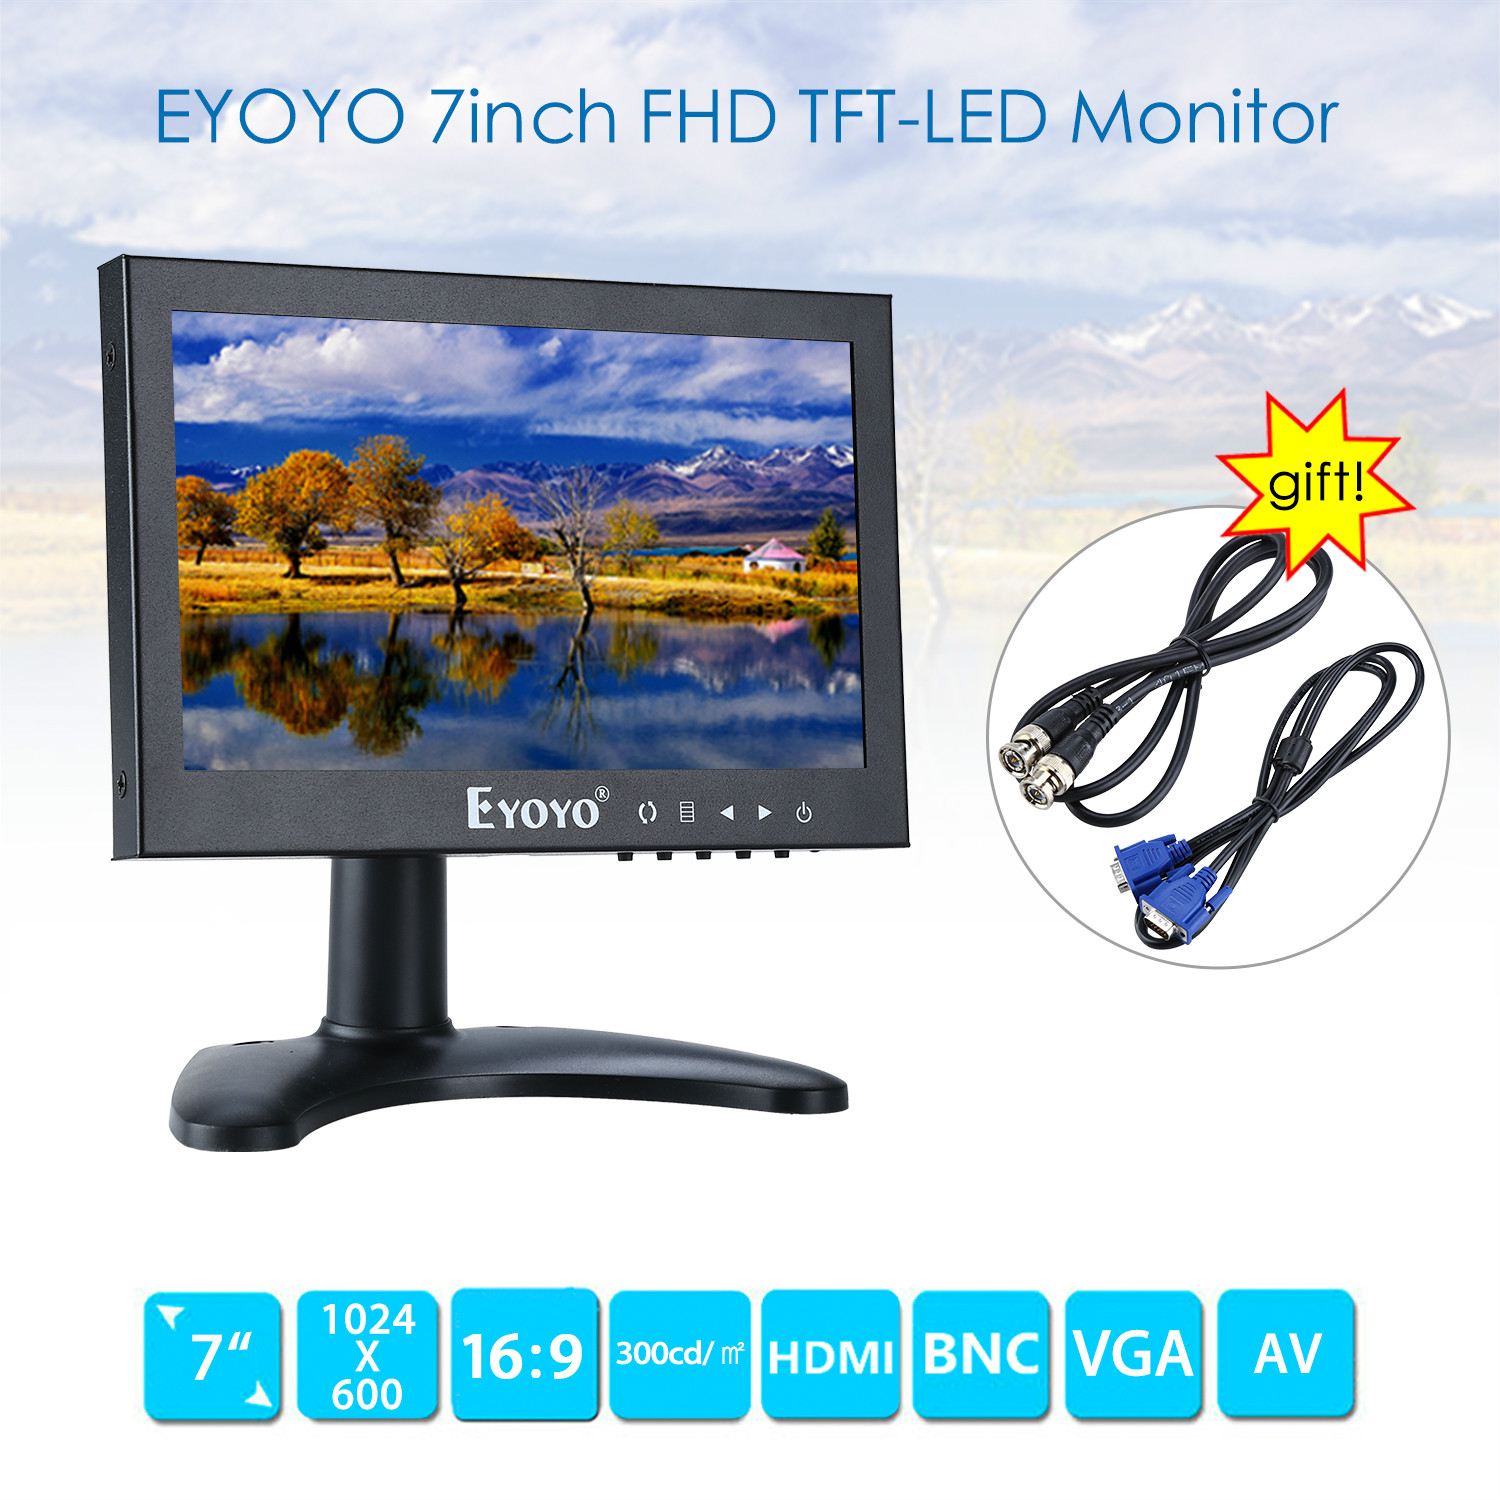 EYOYO 7inch FHD TFT LCD Screen 1024*600 HDMI 75degree BNC VGA AV Video Monitor For CCTV PC DVD DVR Security Camera TV aputure digital 7inch lcd field video monitor v screen vs 1 finehd field monitor accepts hdmi av for dslr